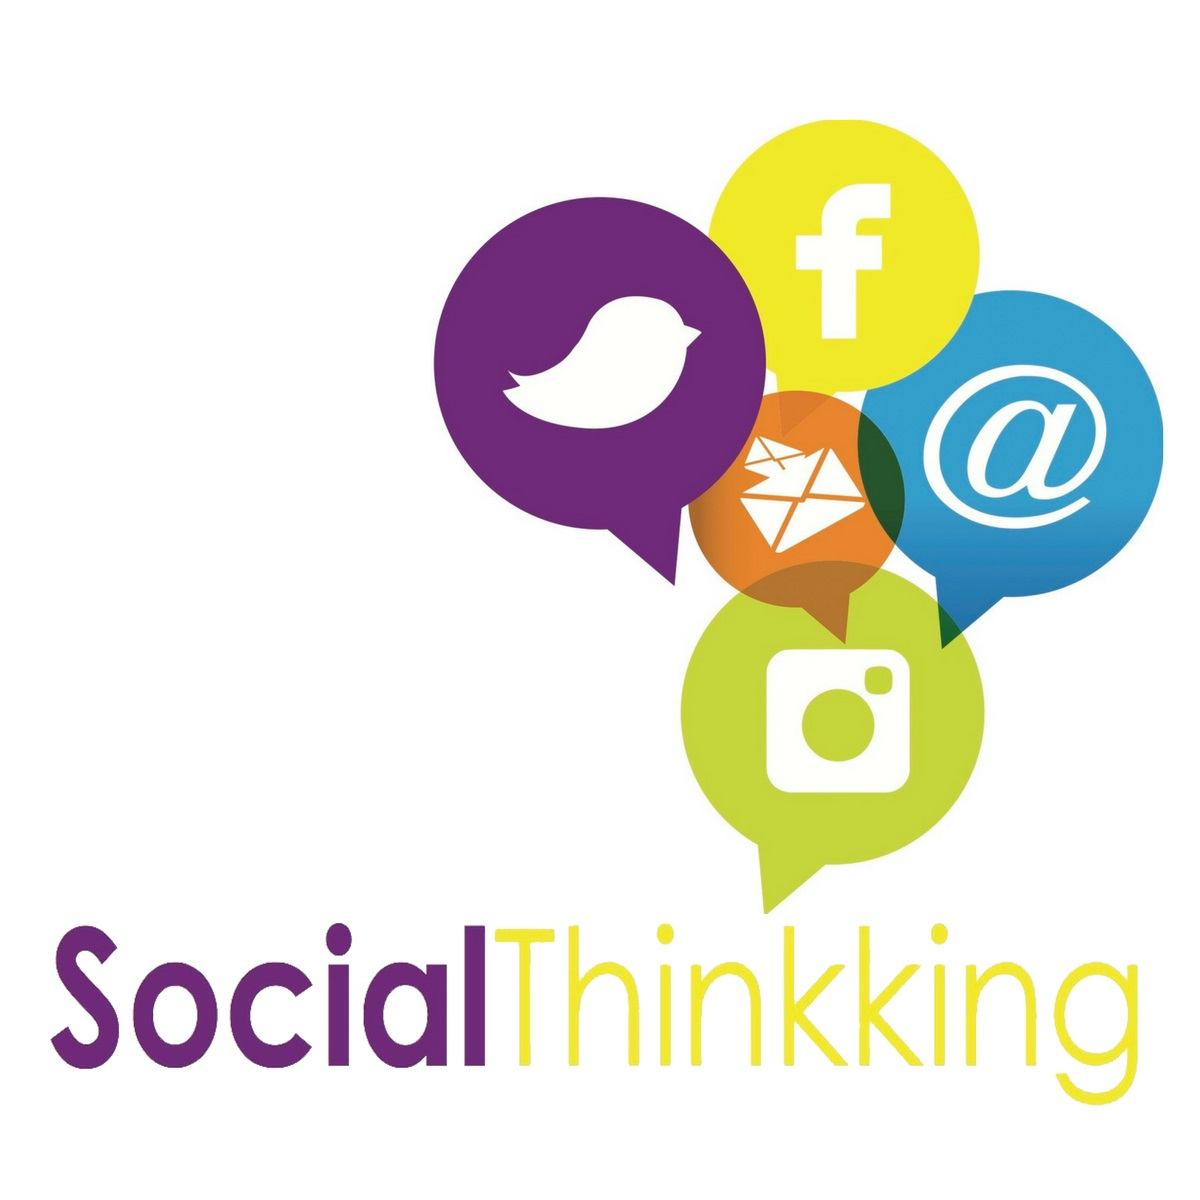 Social Thinkking